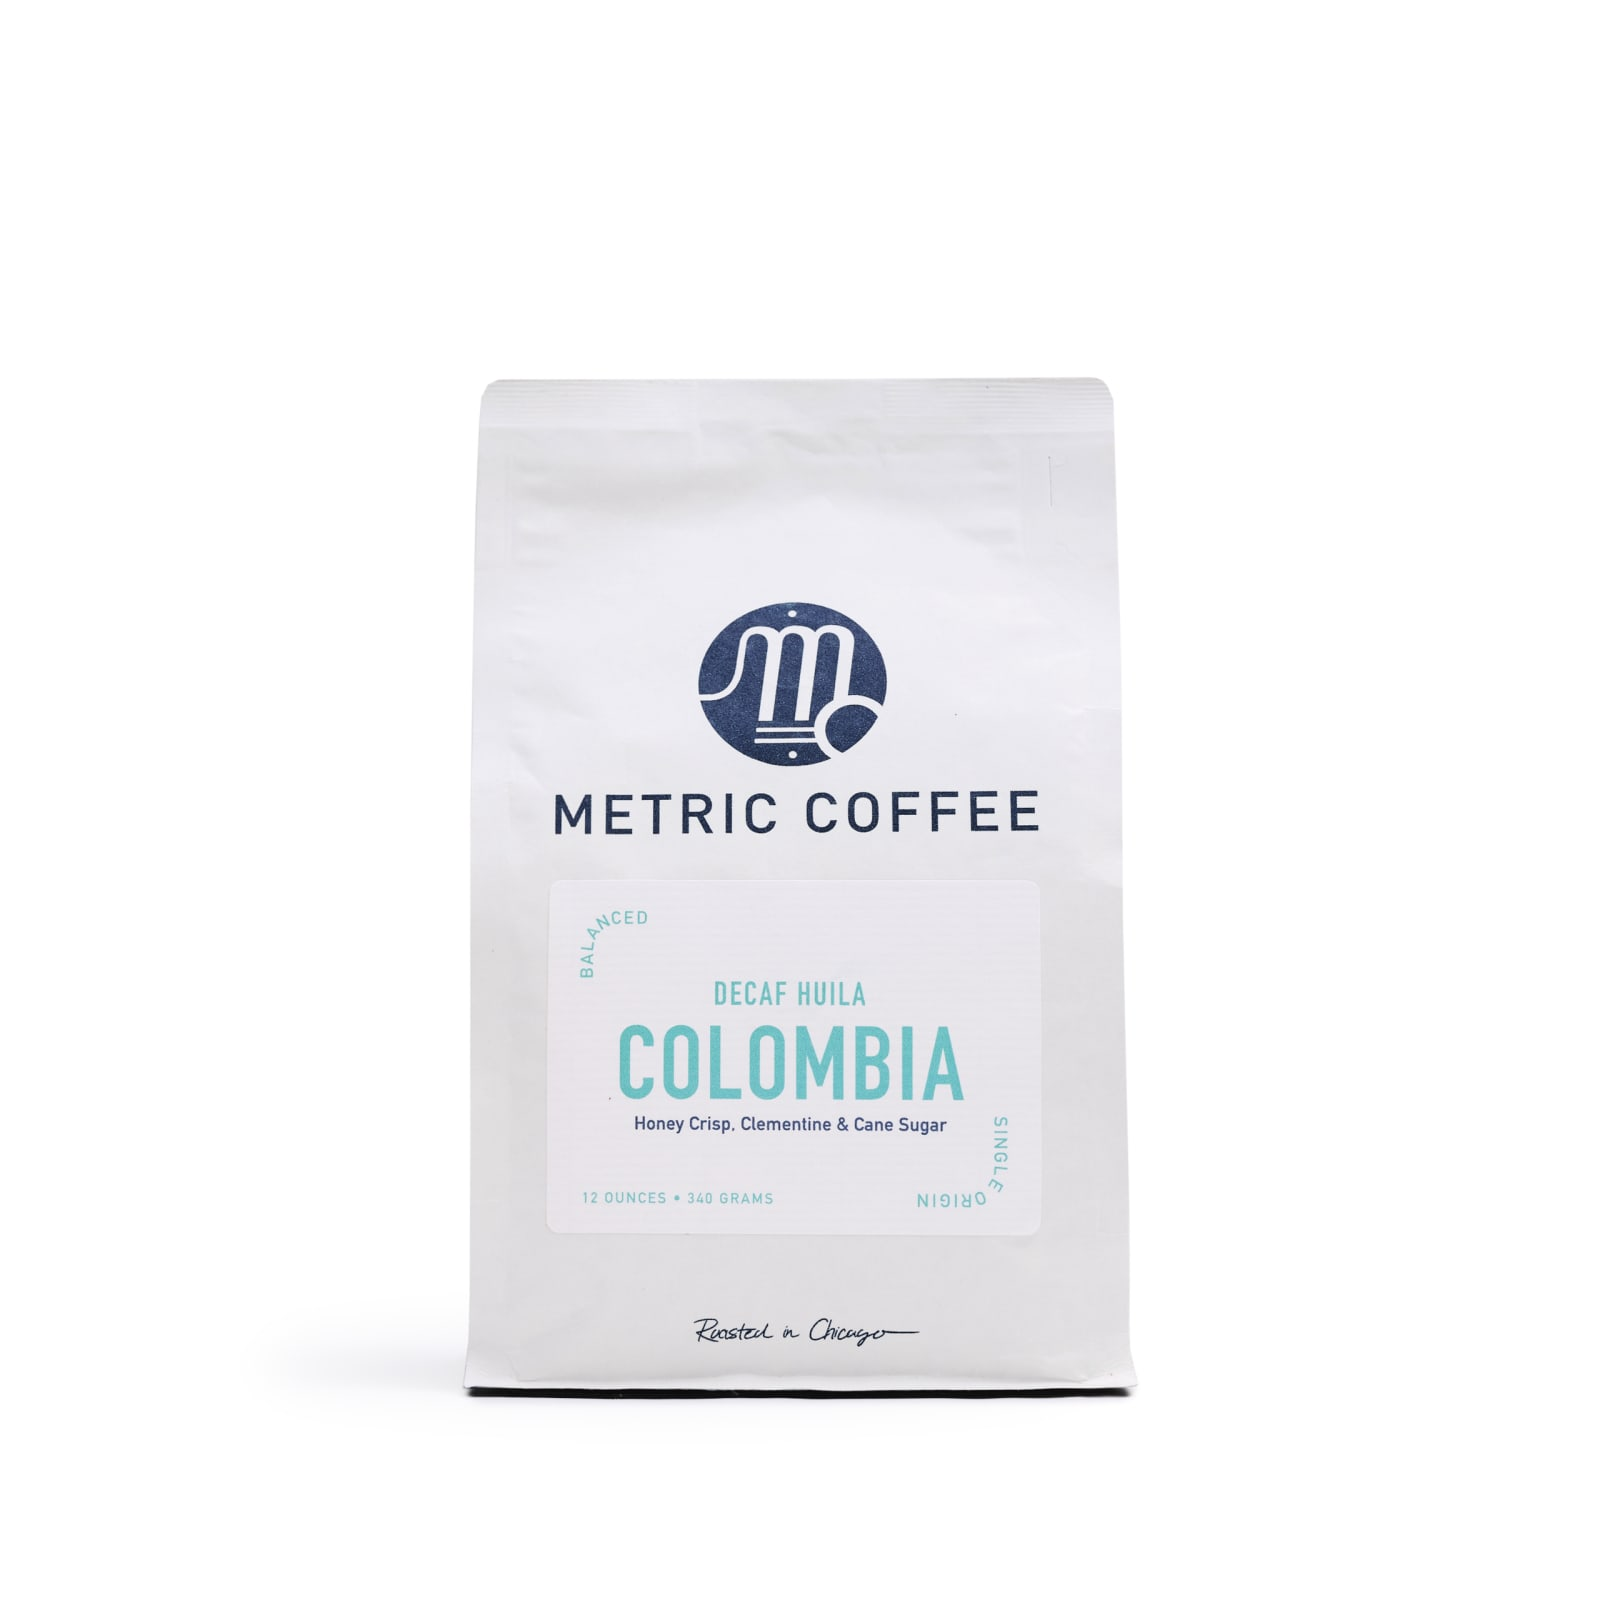 Decaf Huila Colombia